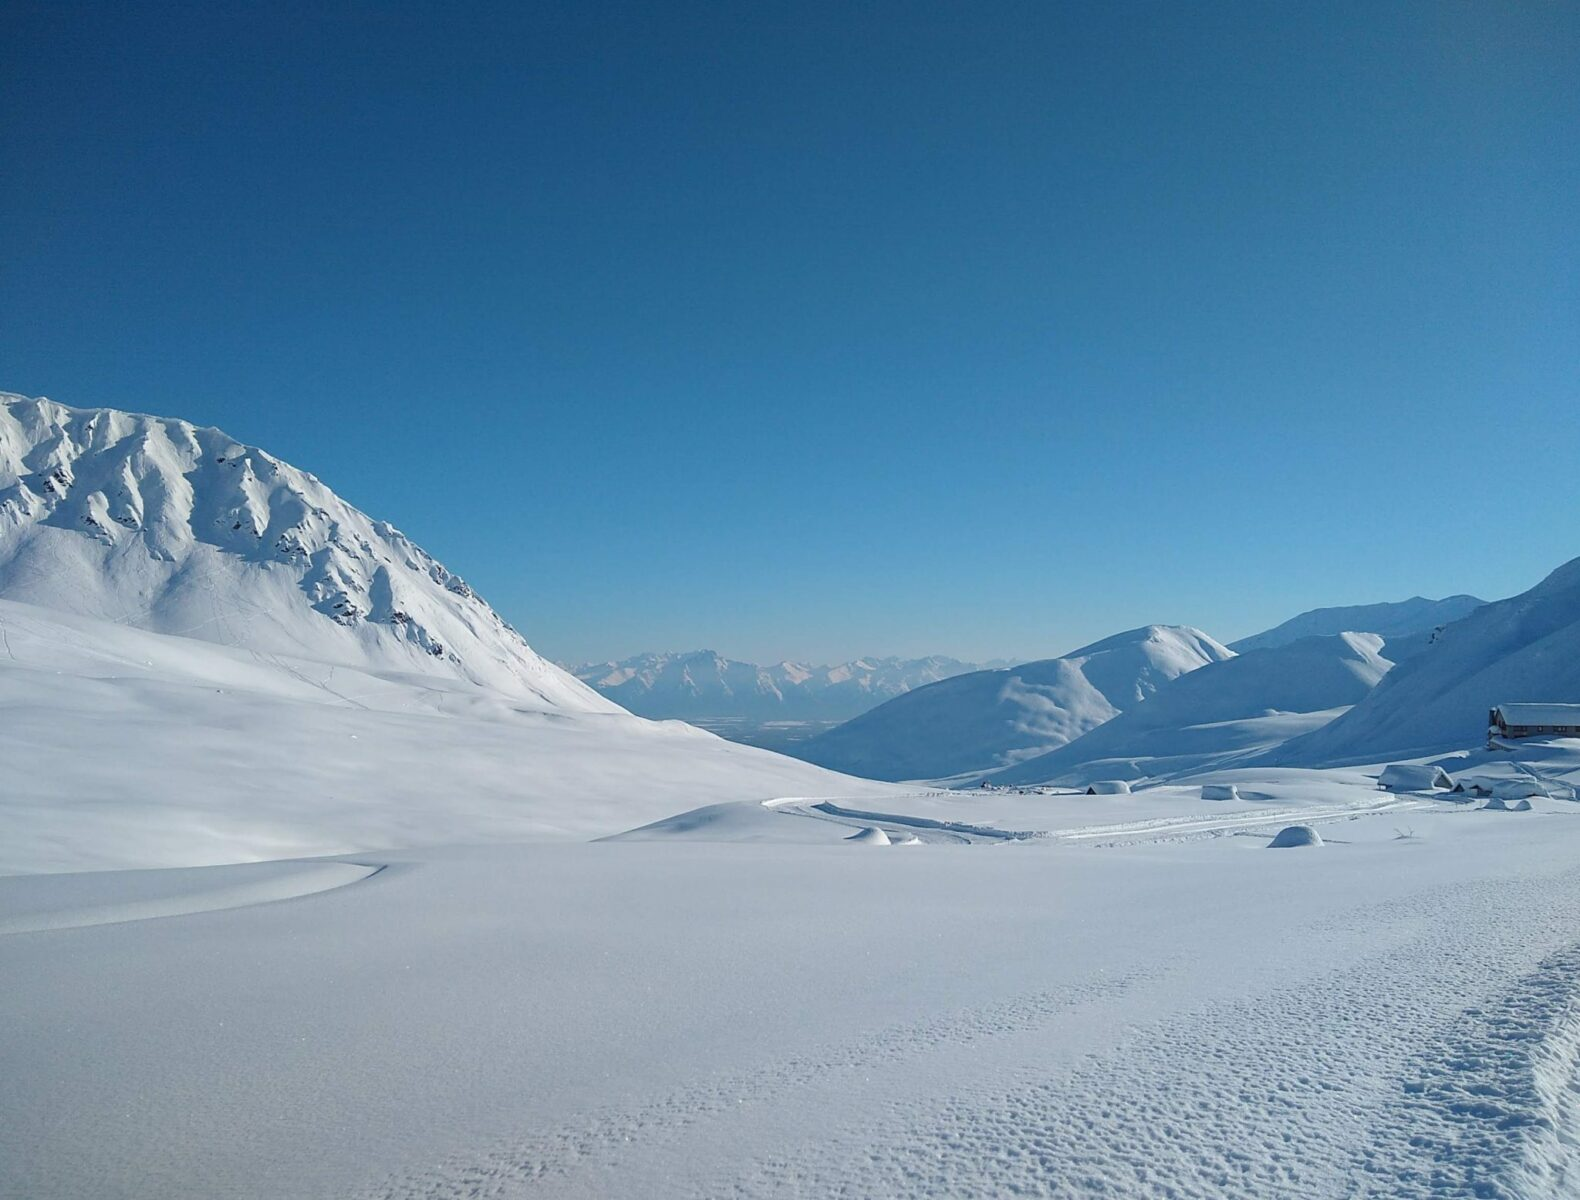 Hatcher Pass in Alaska in winter. There is a giant snowy valley surrounded by mountains on a snowy day. There are even higher mountains in the distance